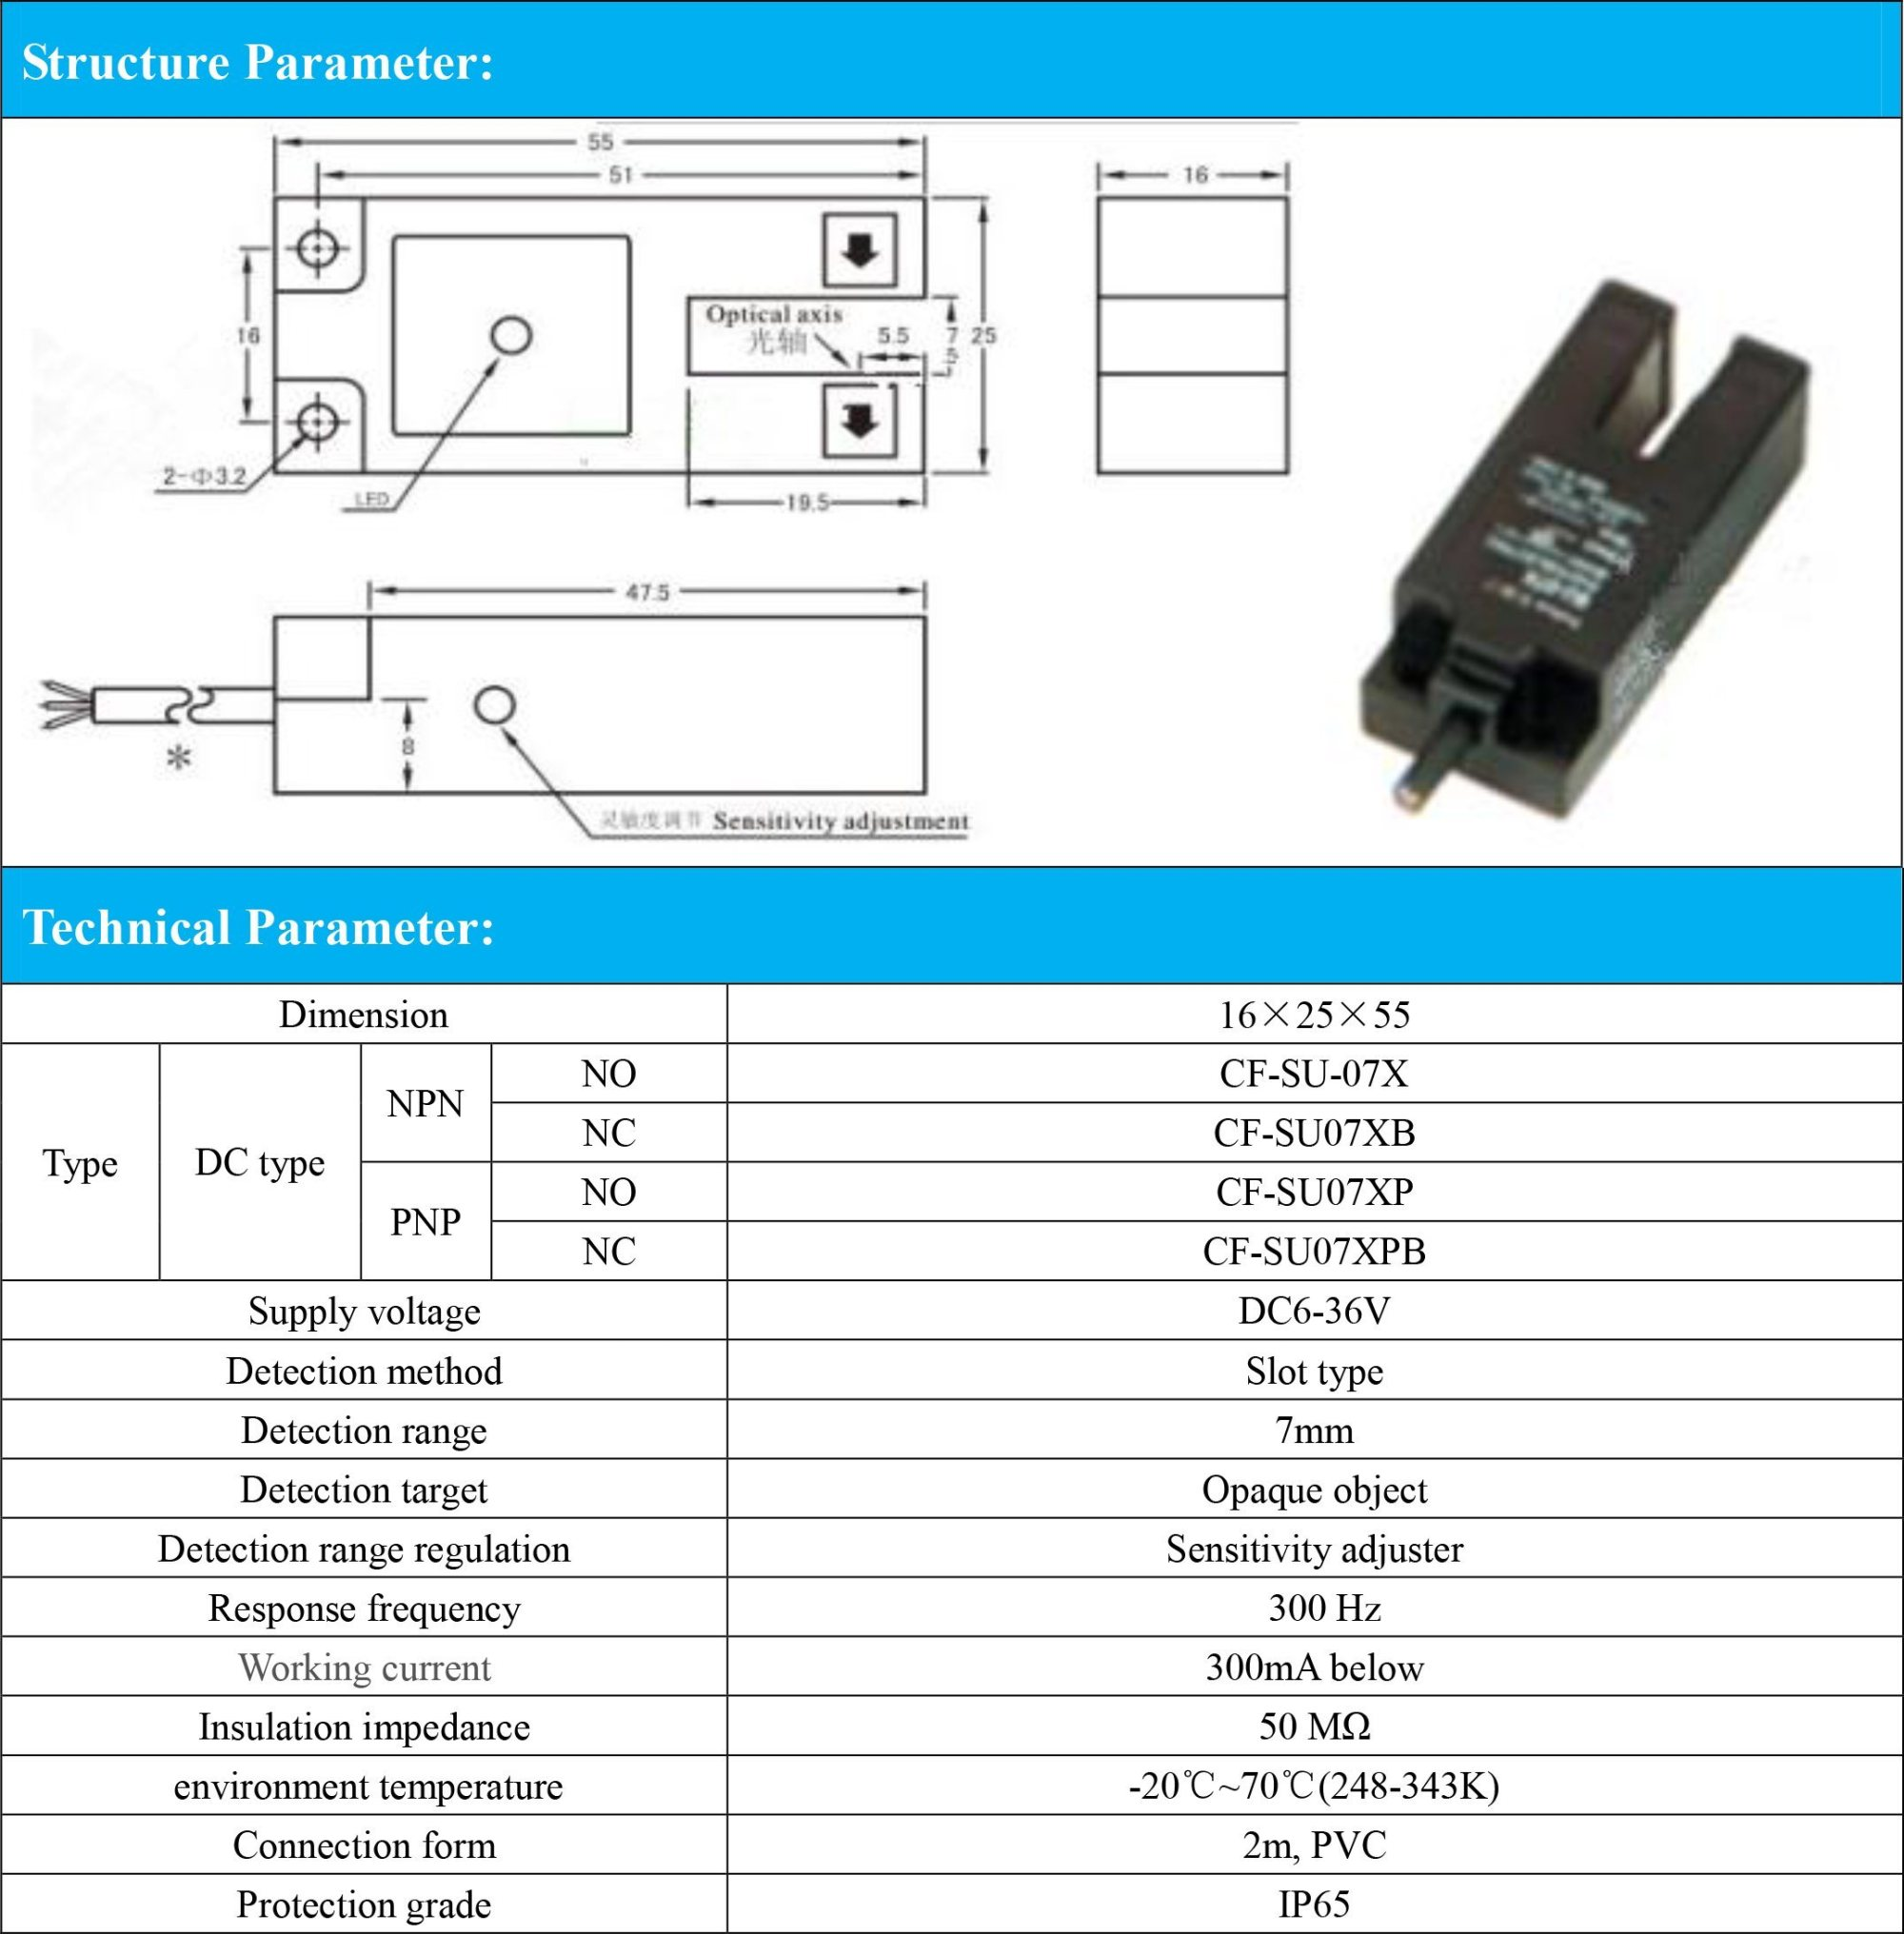 hight resolution of pnp nc slot type 7mm detection range photoelectric switch sensor